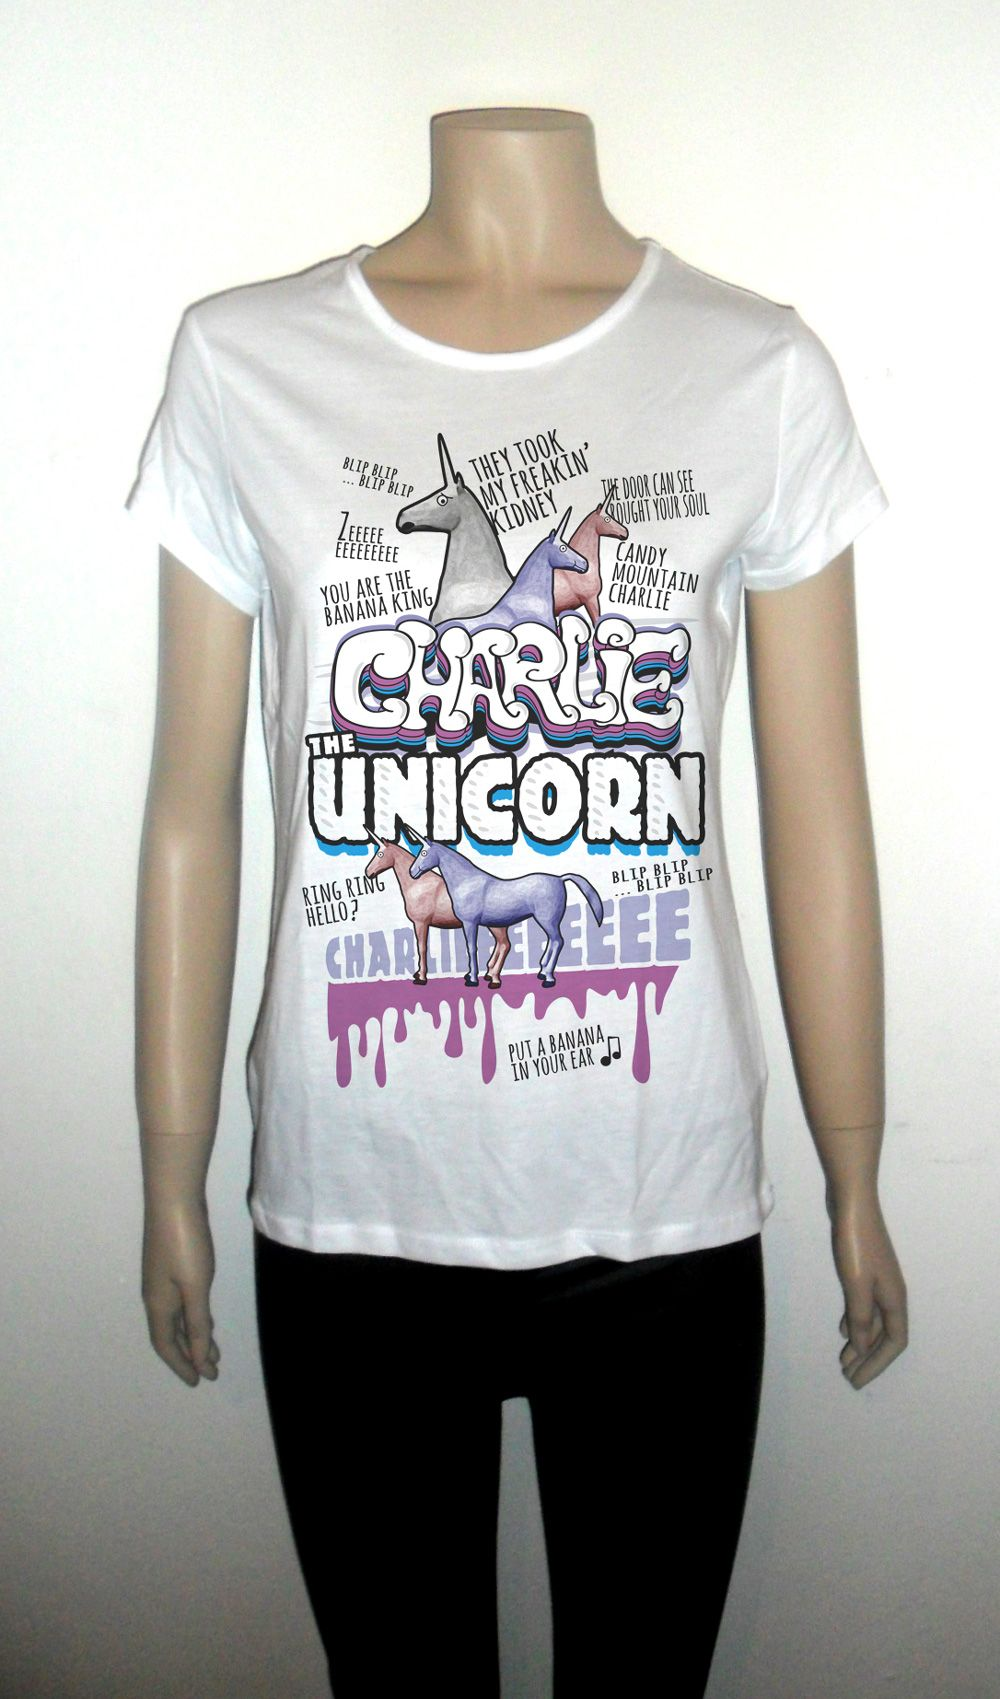 e590a5f5 Charlie the unicorn white tshirt for women humor | Products I Love ...